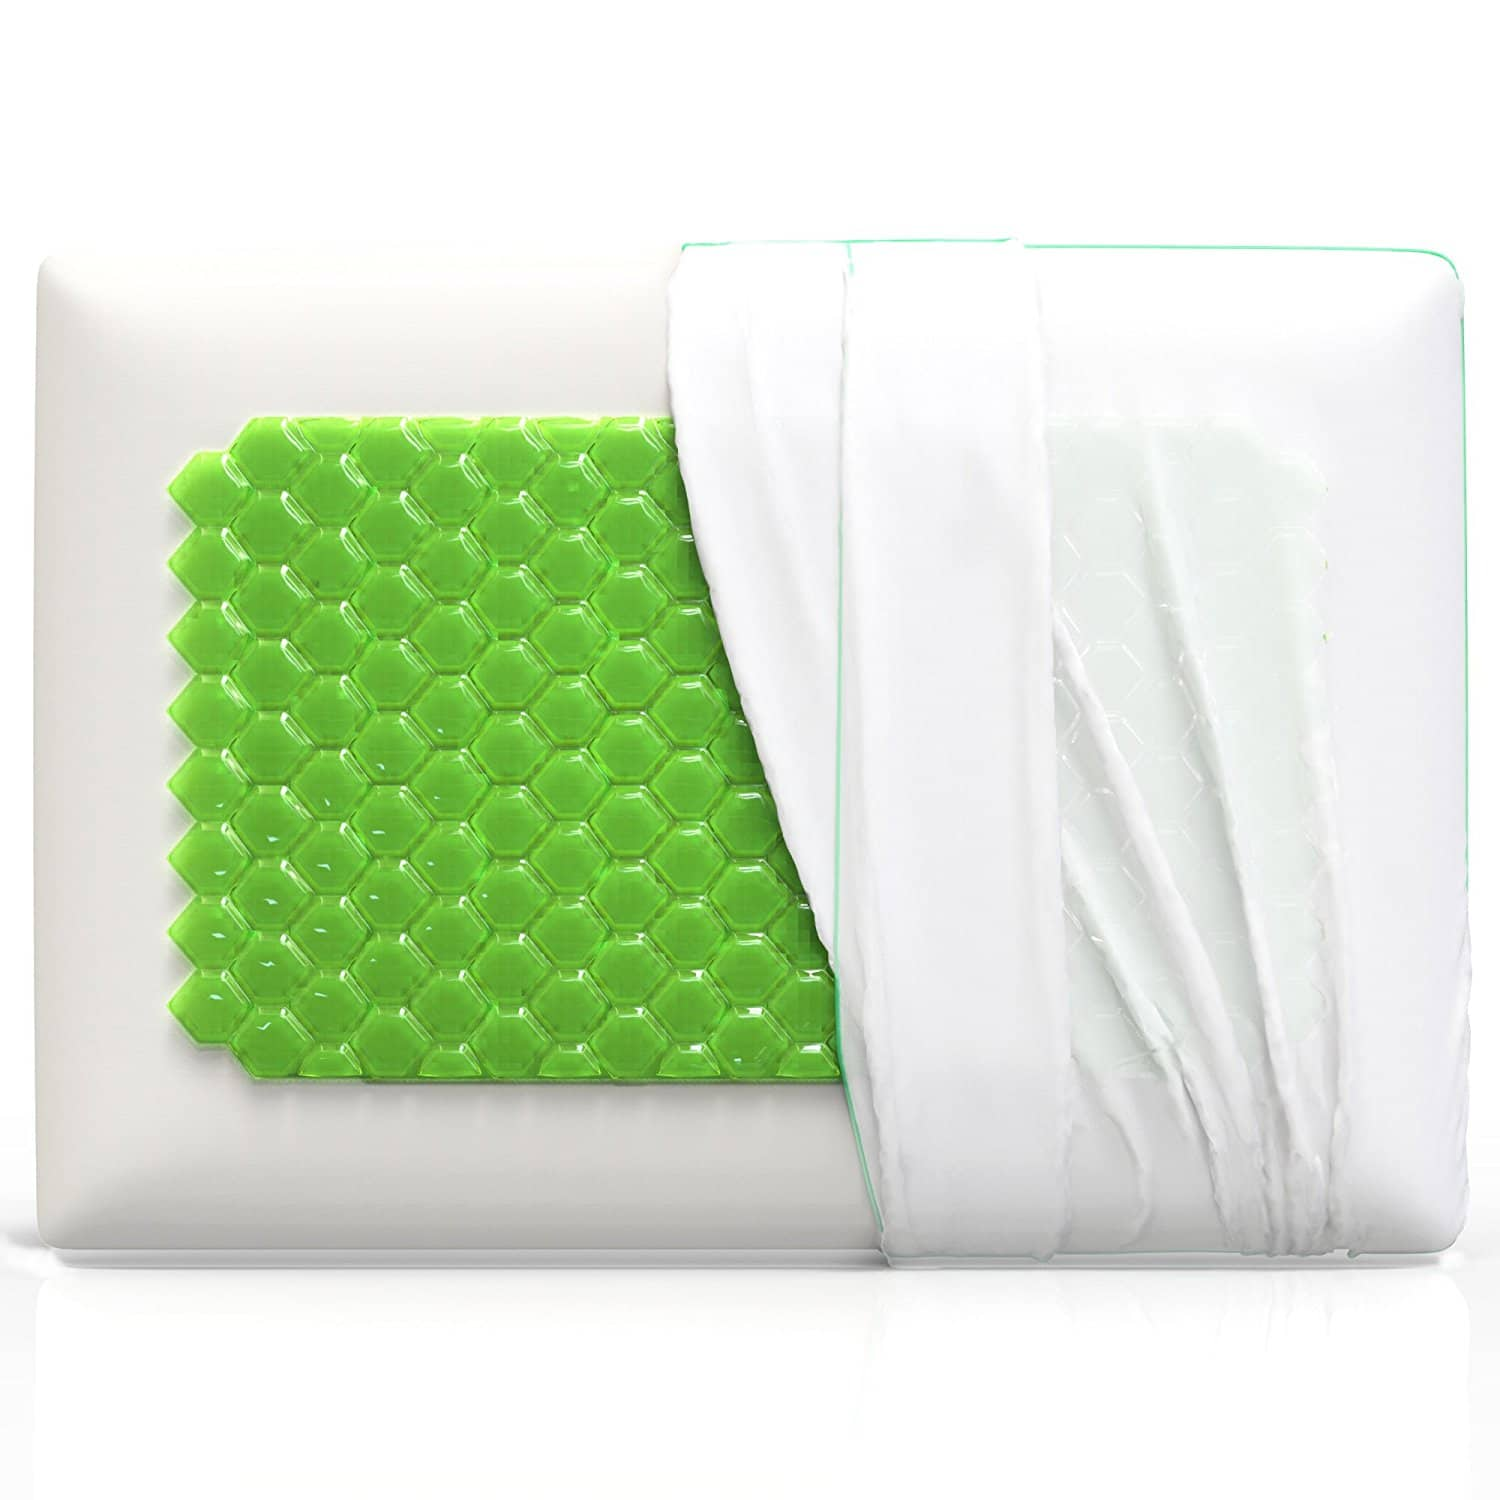 orthopedic memory foam pillow by laniloha